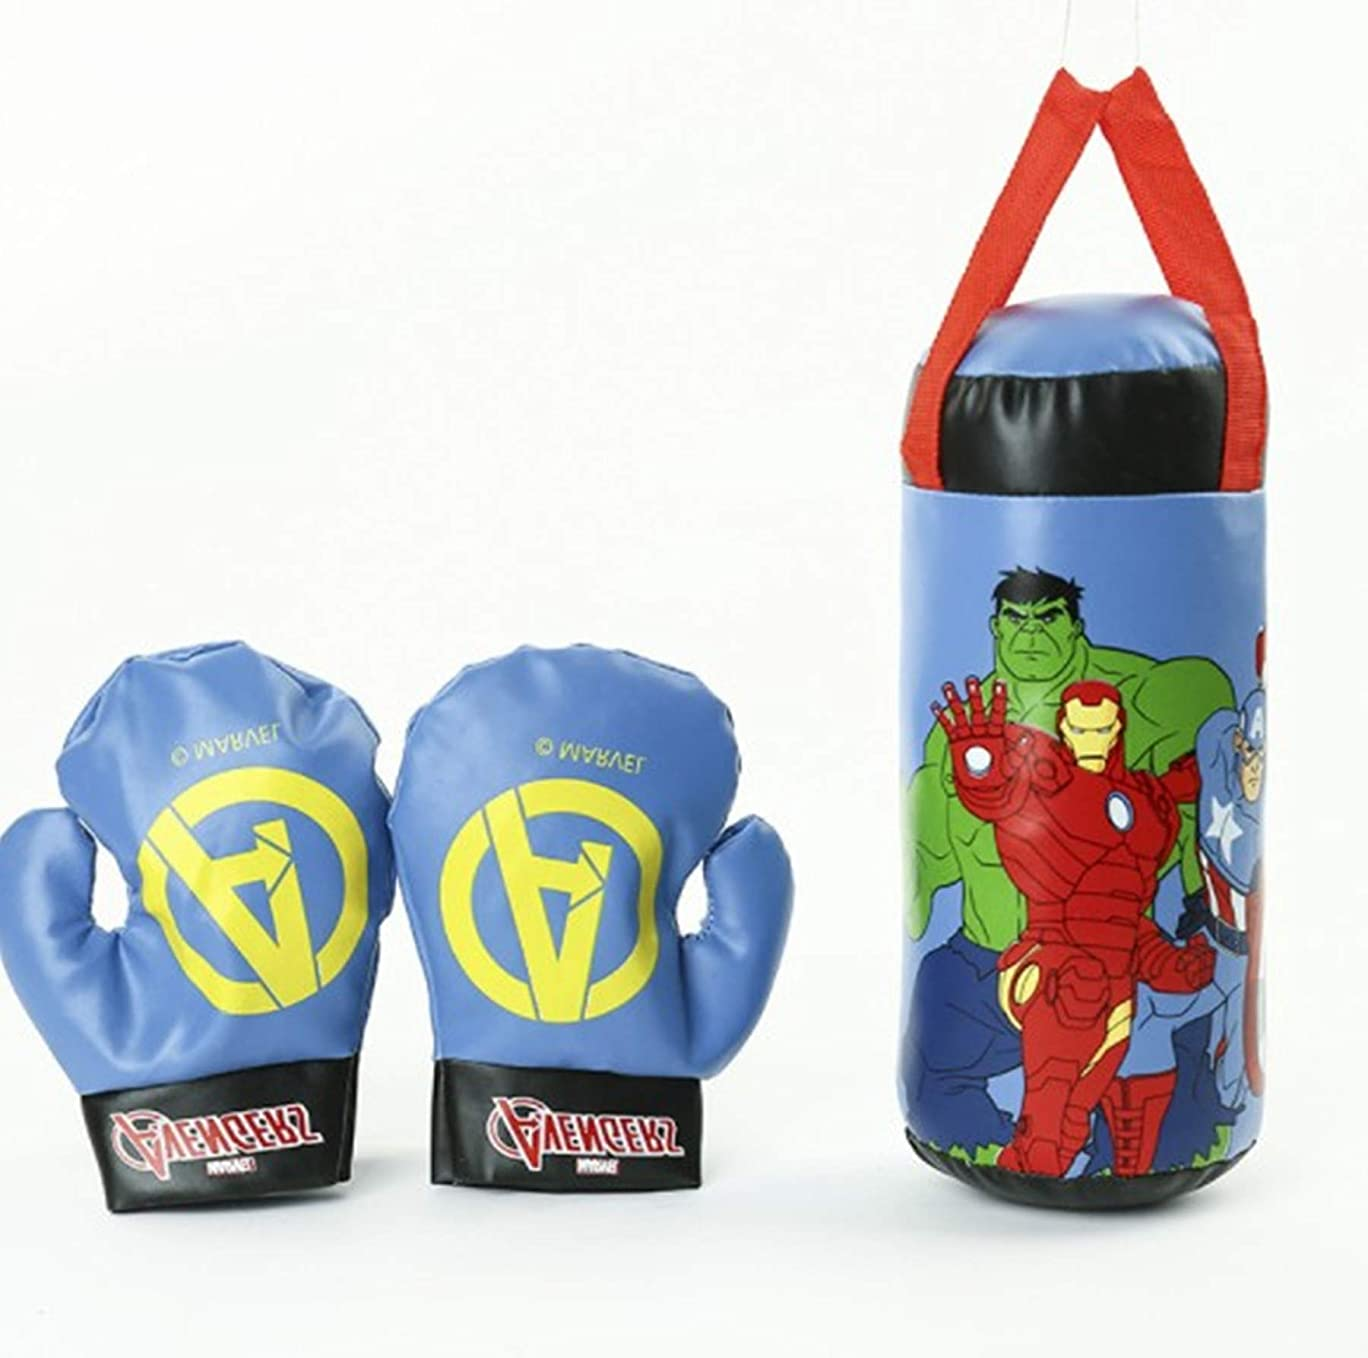 The Avengers Spiderman Mini Punching Bag for Kids Filled Boxing Bag Set for MMA and Kickboxing Training